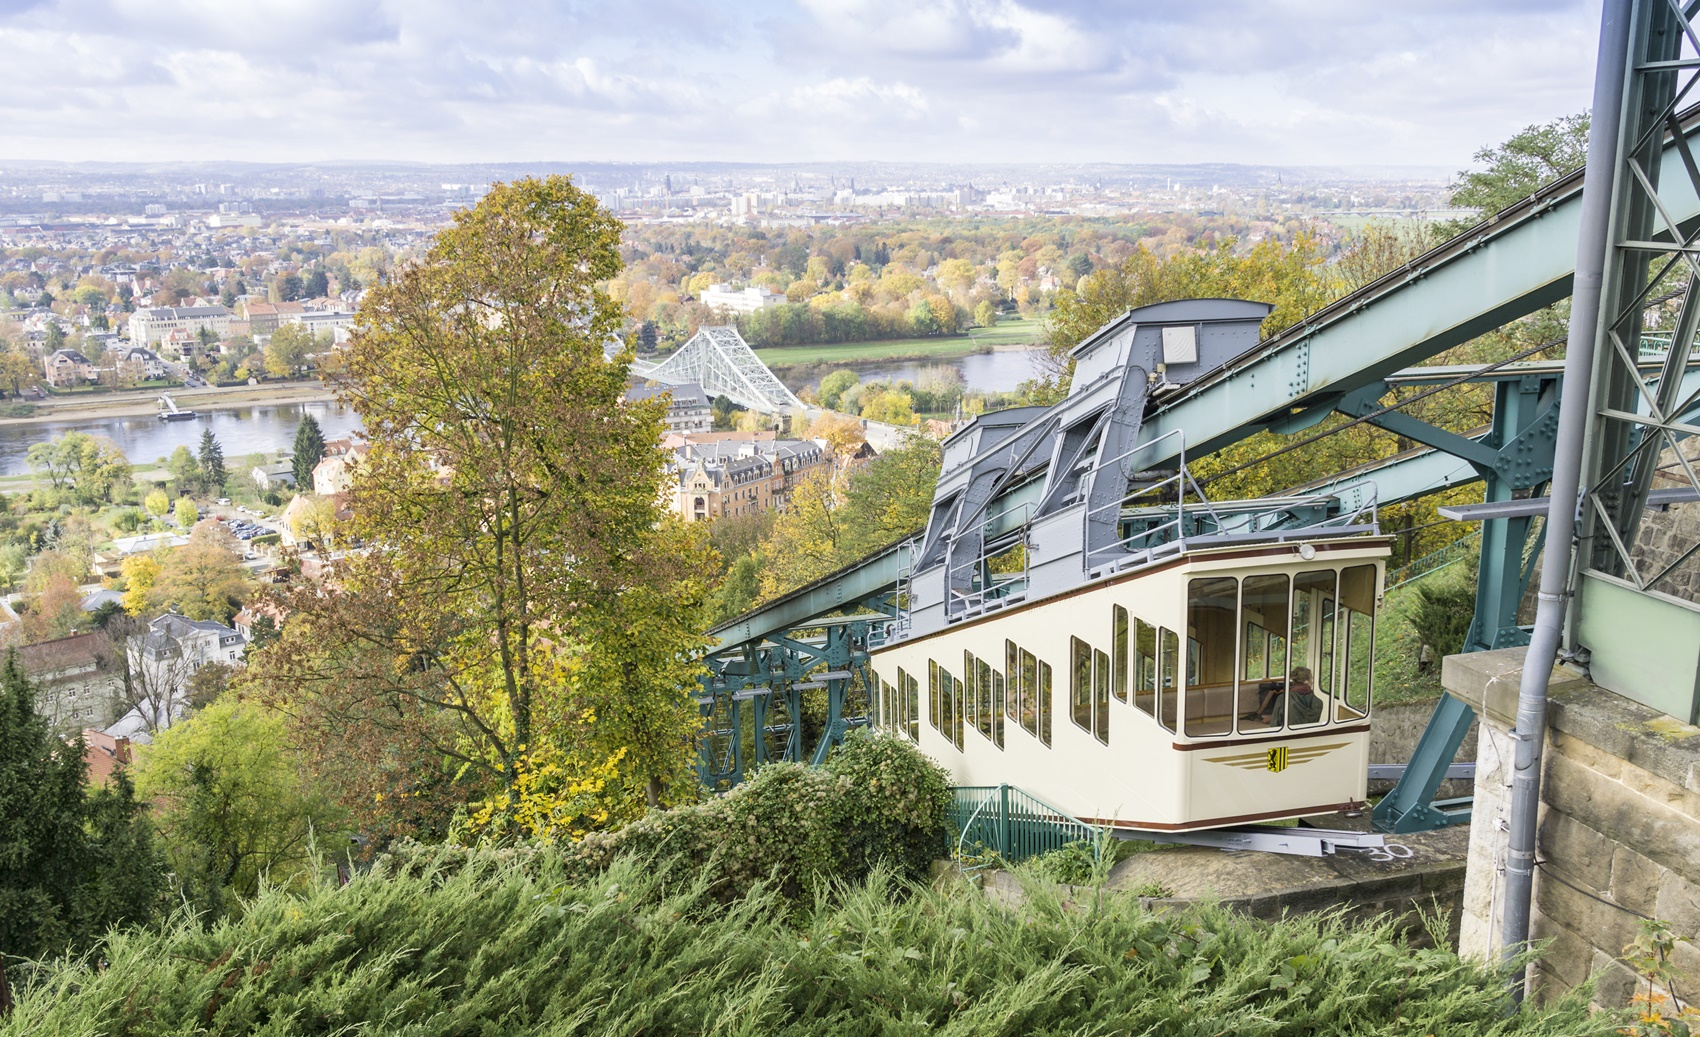 view over Dresden with the Blue Wonder and Dresden Suspension Railway